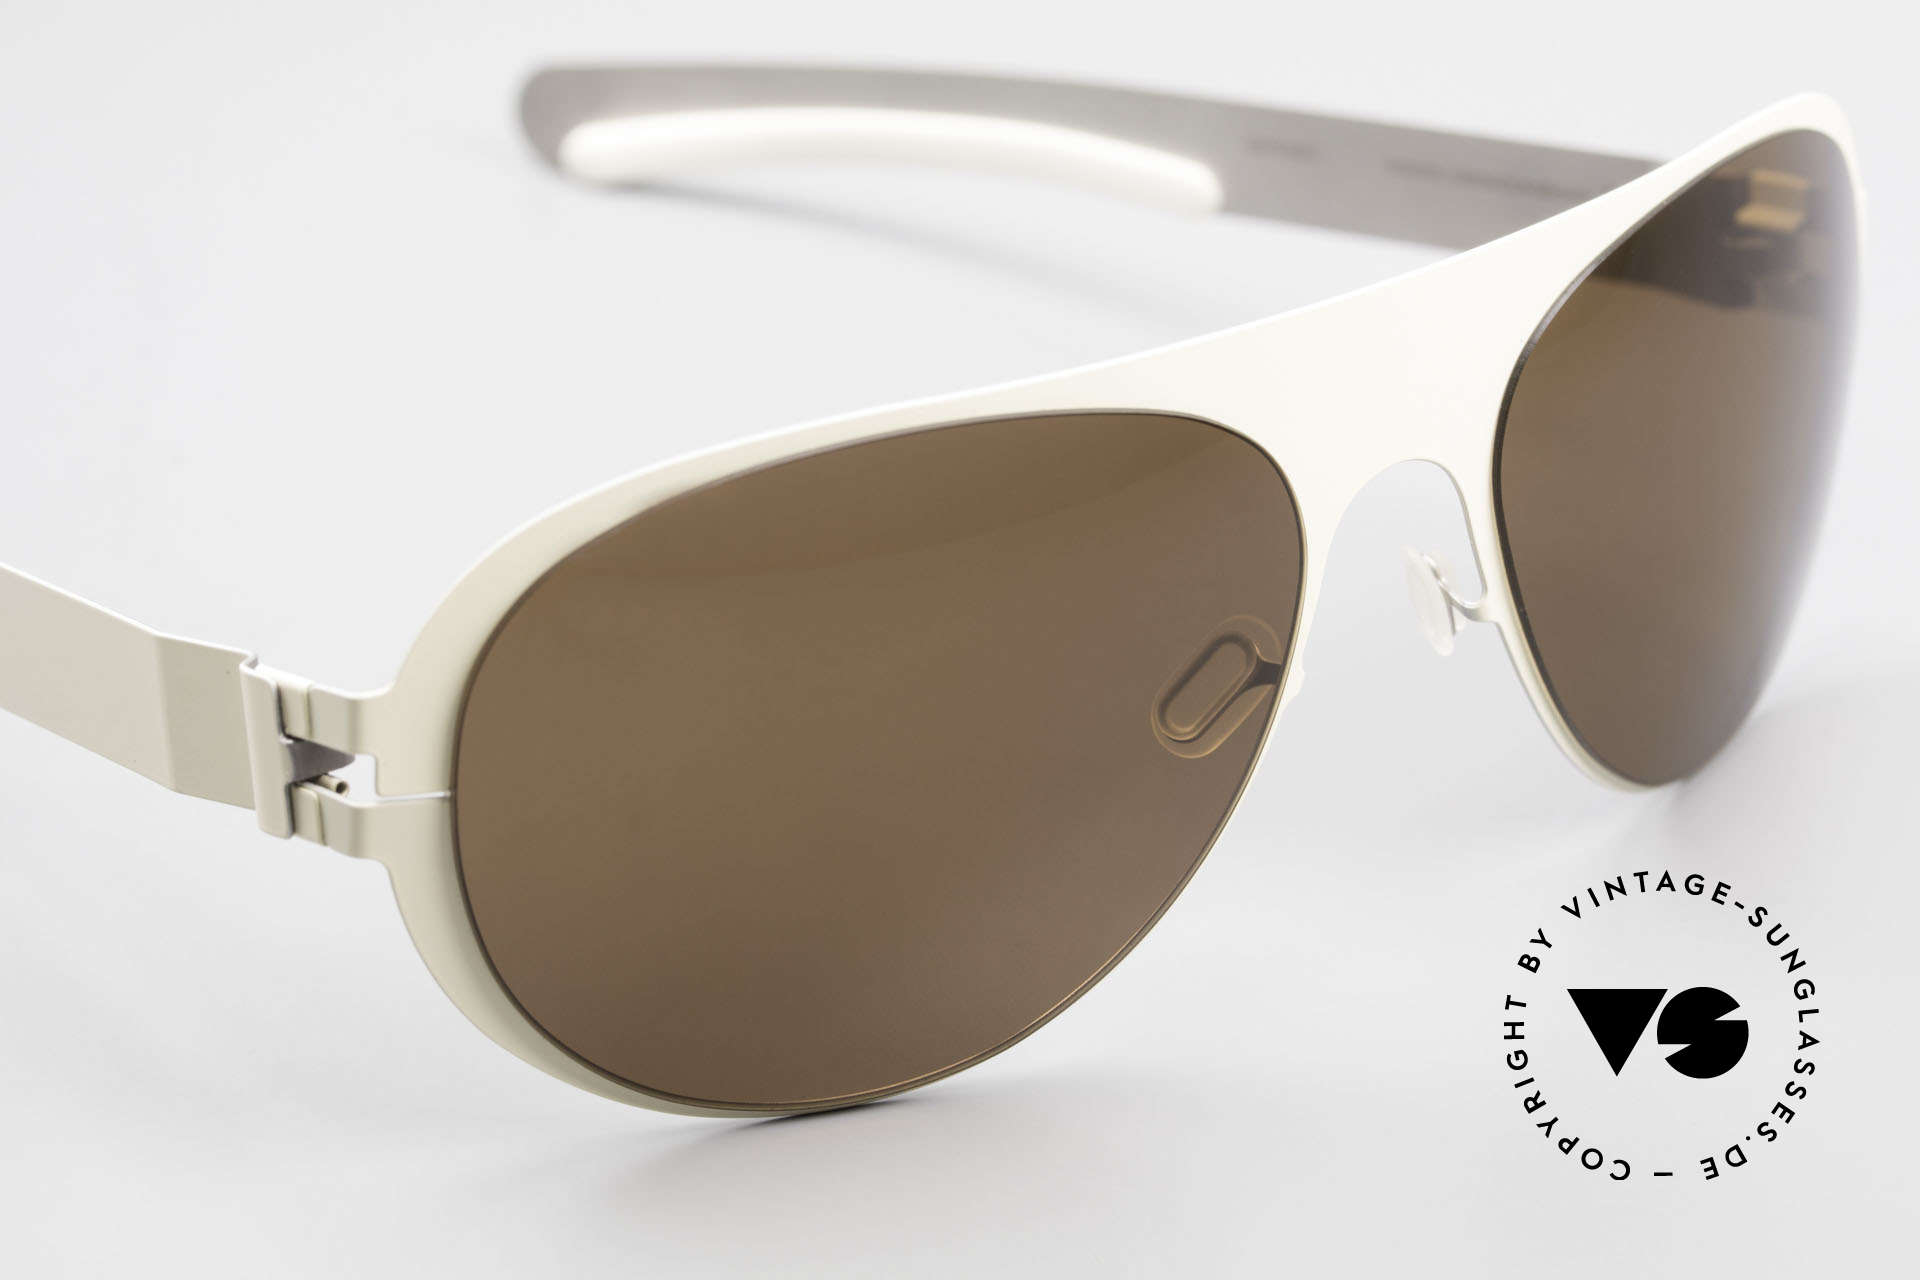 Mykita Winston Limited Designer Sunglasses, worn by many celebs (rare & in high demand, meanwhile), Made for Men